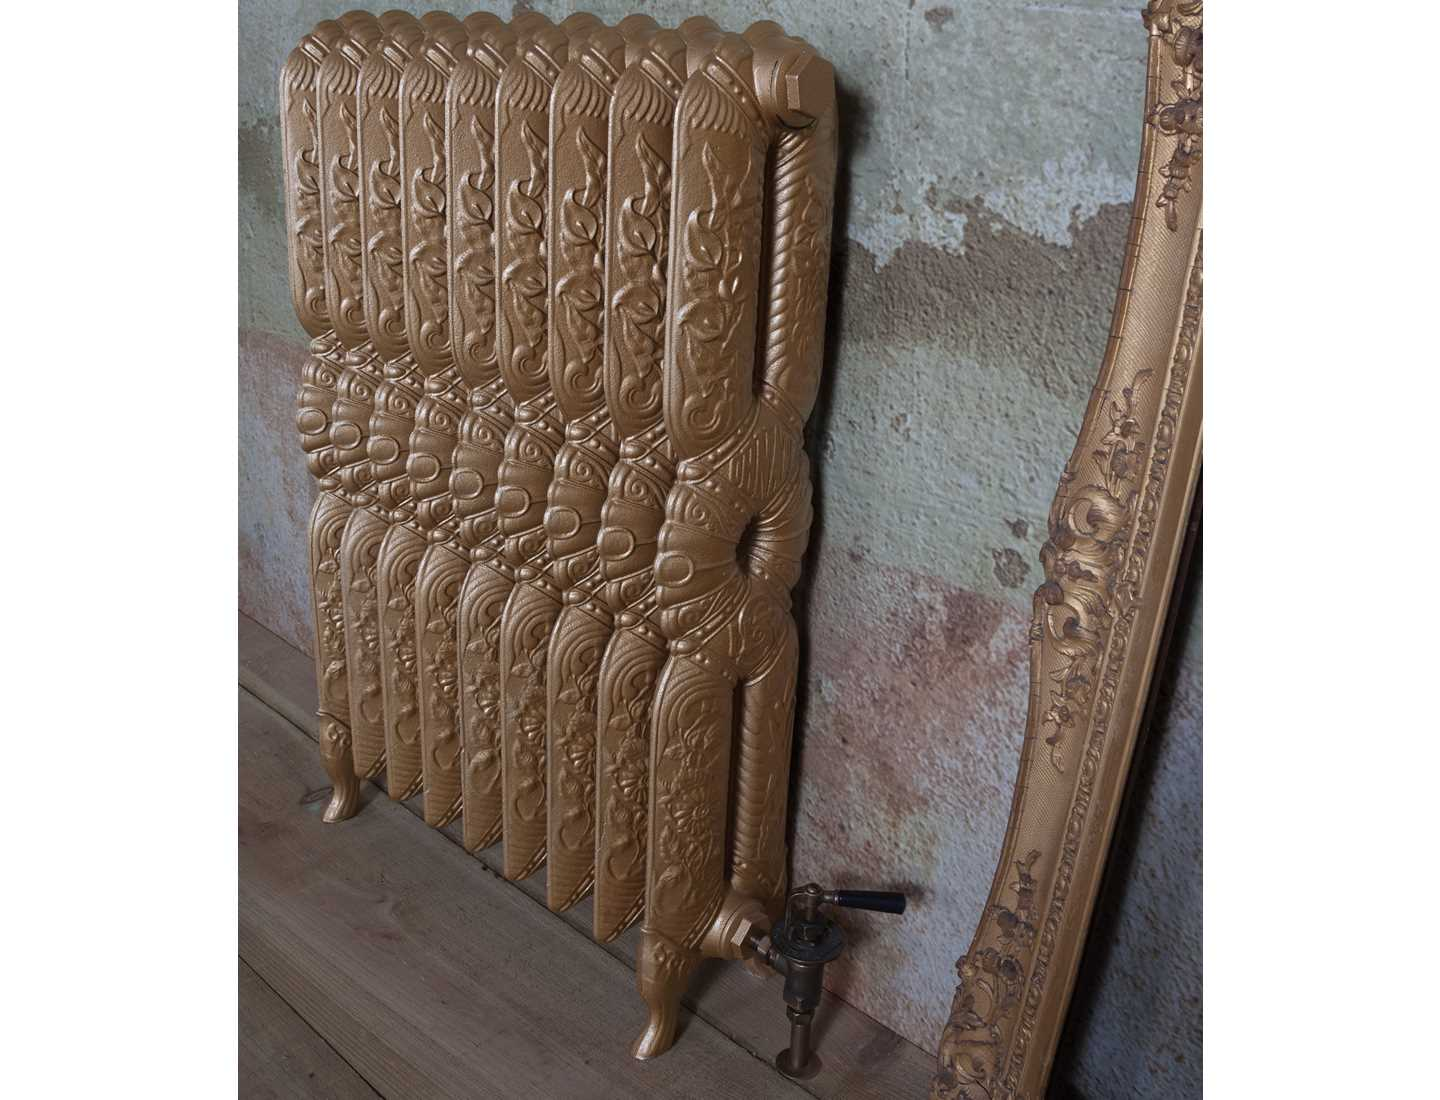 Decor radiator painted in hammered gold